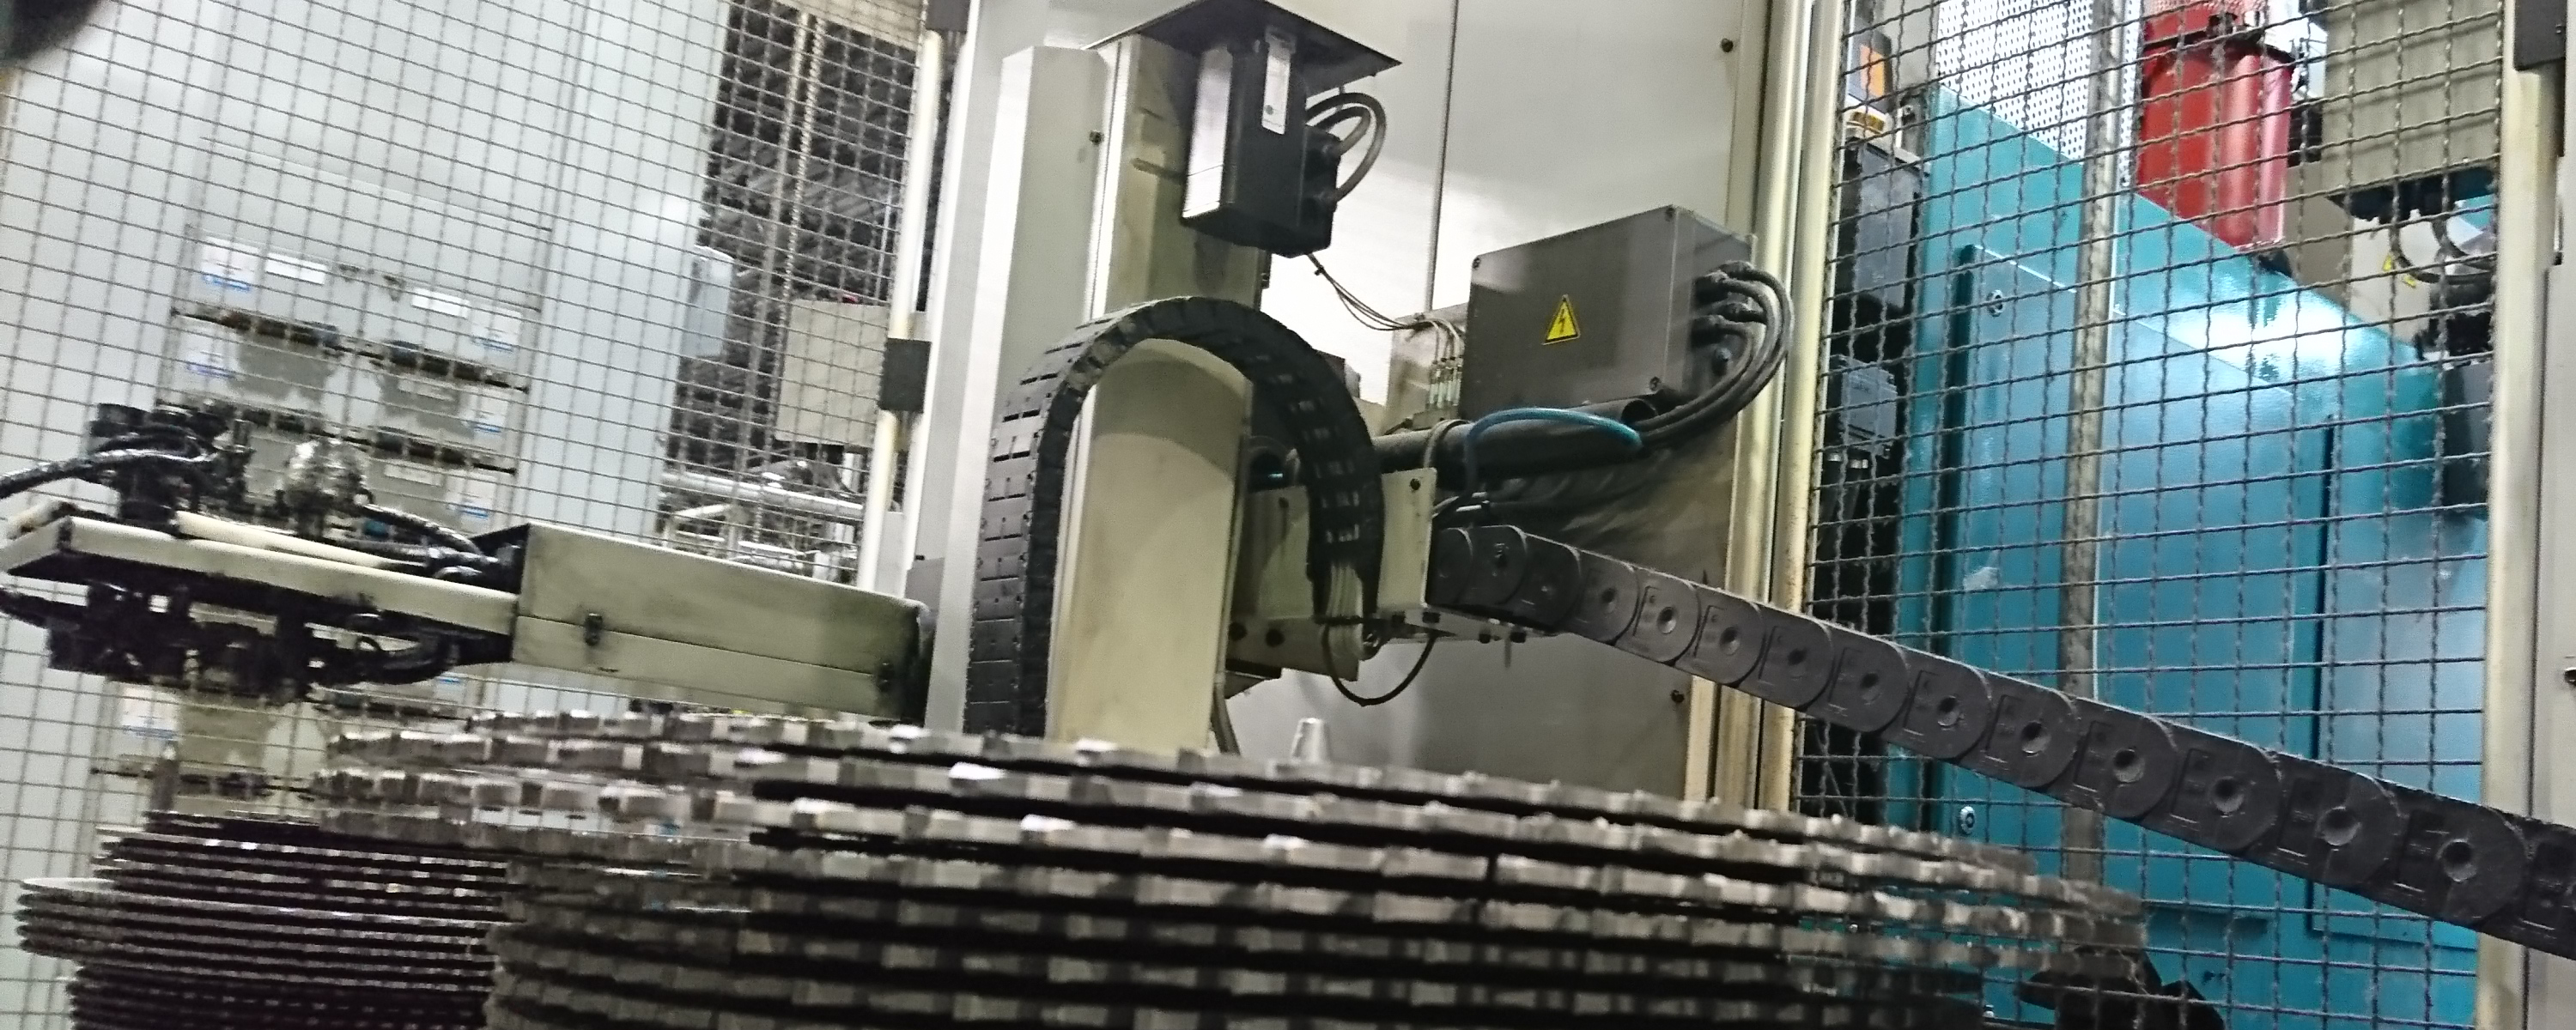 FS Tool Corporation - Cutting Tool Manufacturing and